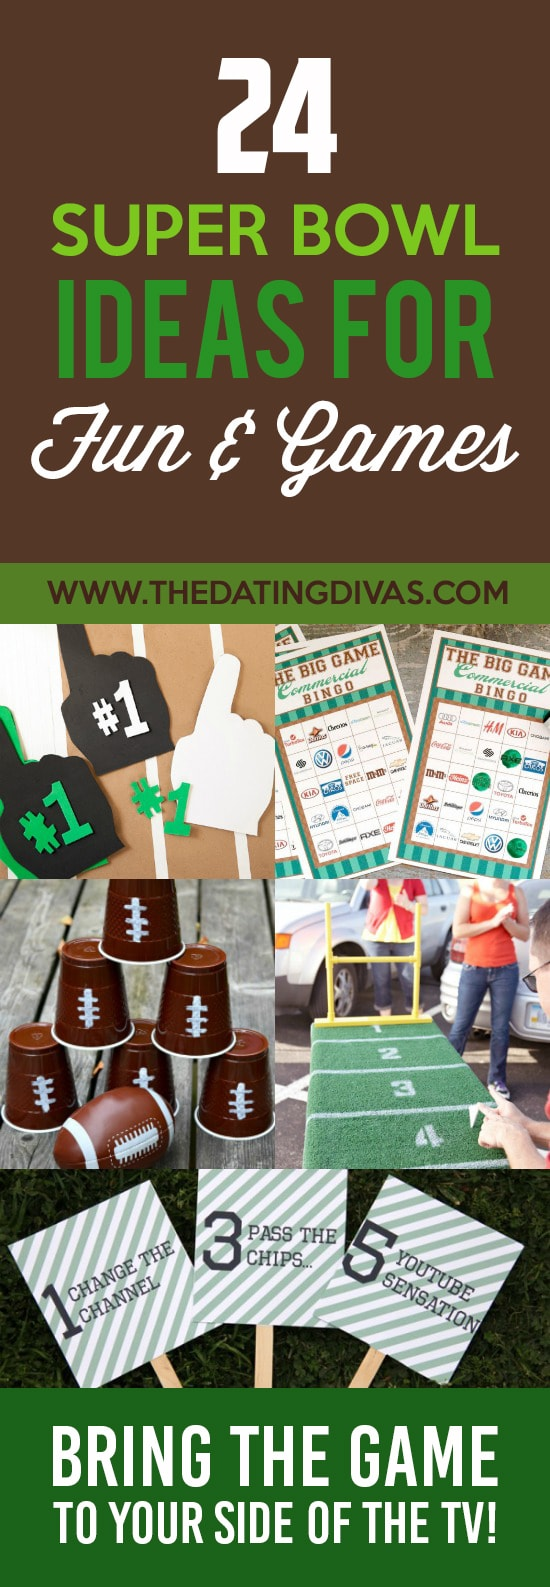 Fun and games for your Super Bowl party.